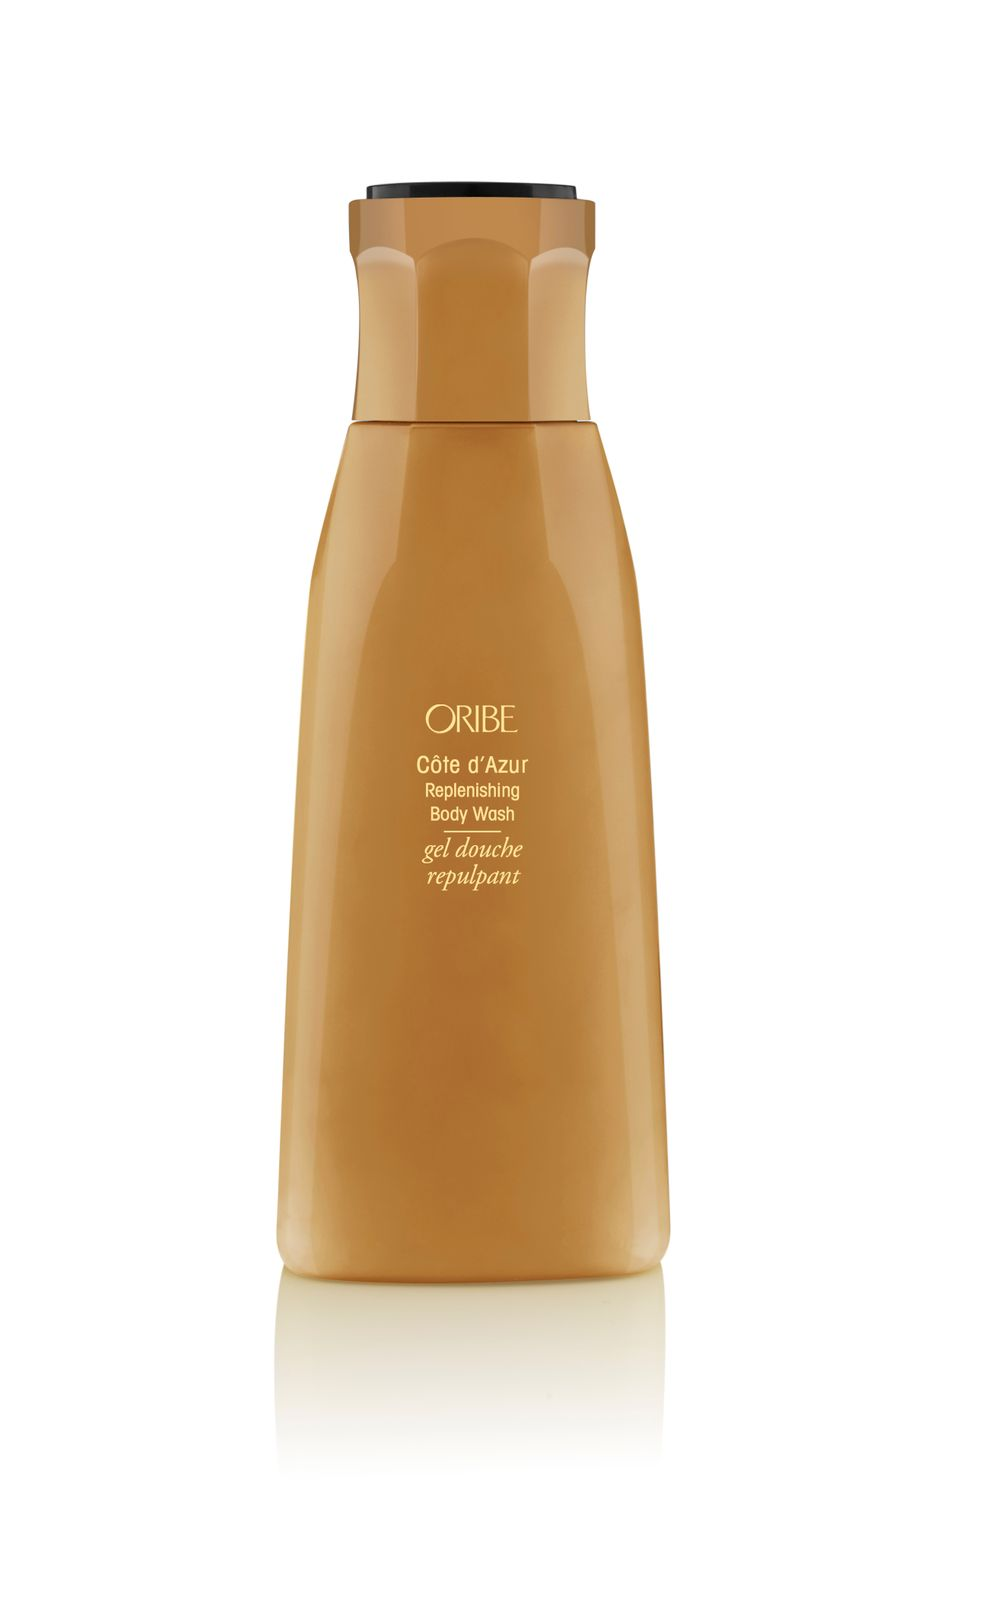 Cote d'Azur Replenishing Body Wash: Infused with Oribe's signature scent, leaves skin silky and moisturized with a blend of sweet almond, meadowfoam and starflow oils, amber extract, passionflower oil and more.